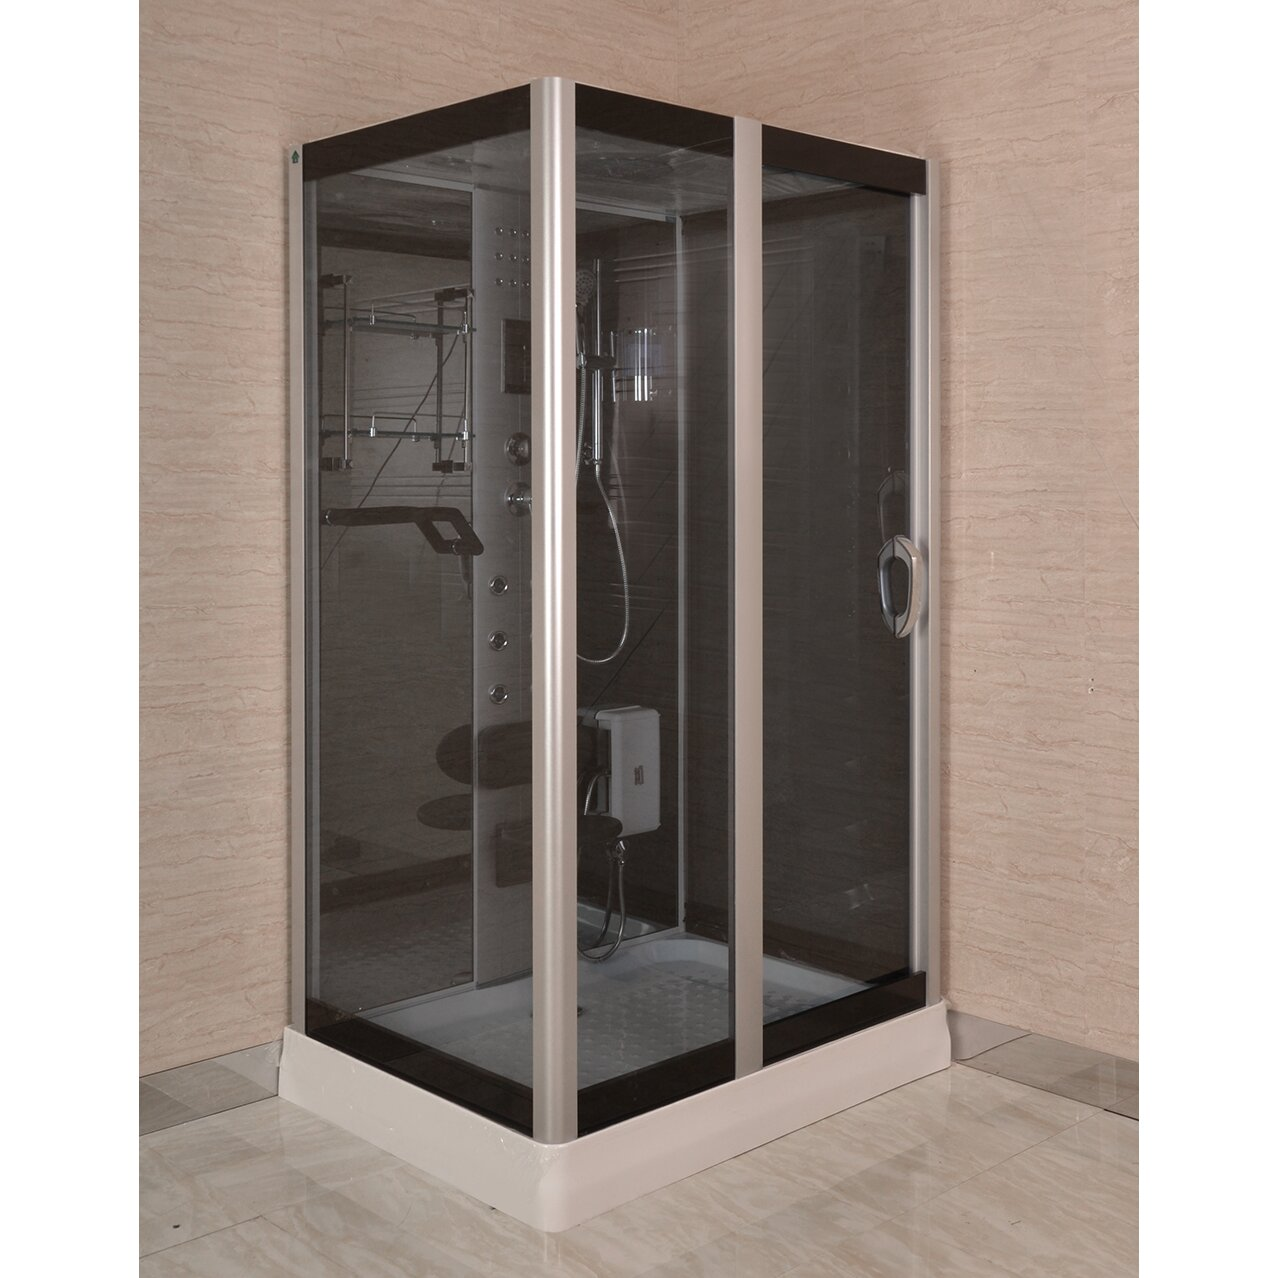 "Kokss 48"" X 36"" X 84.5"" Rectangle Shower Enclosure"